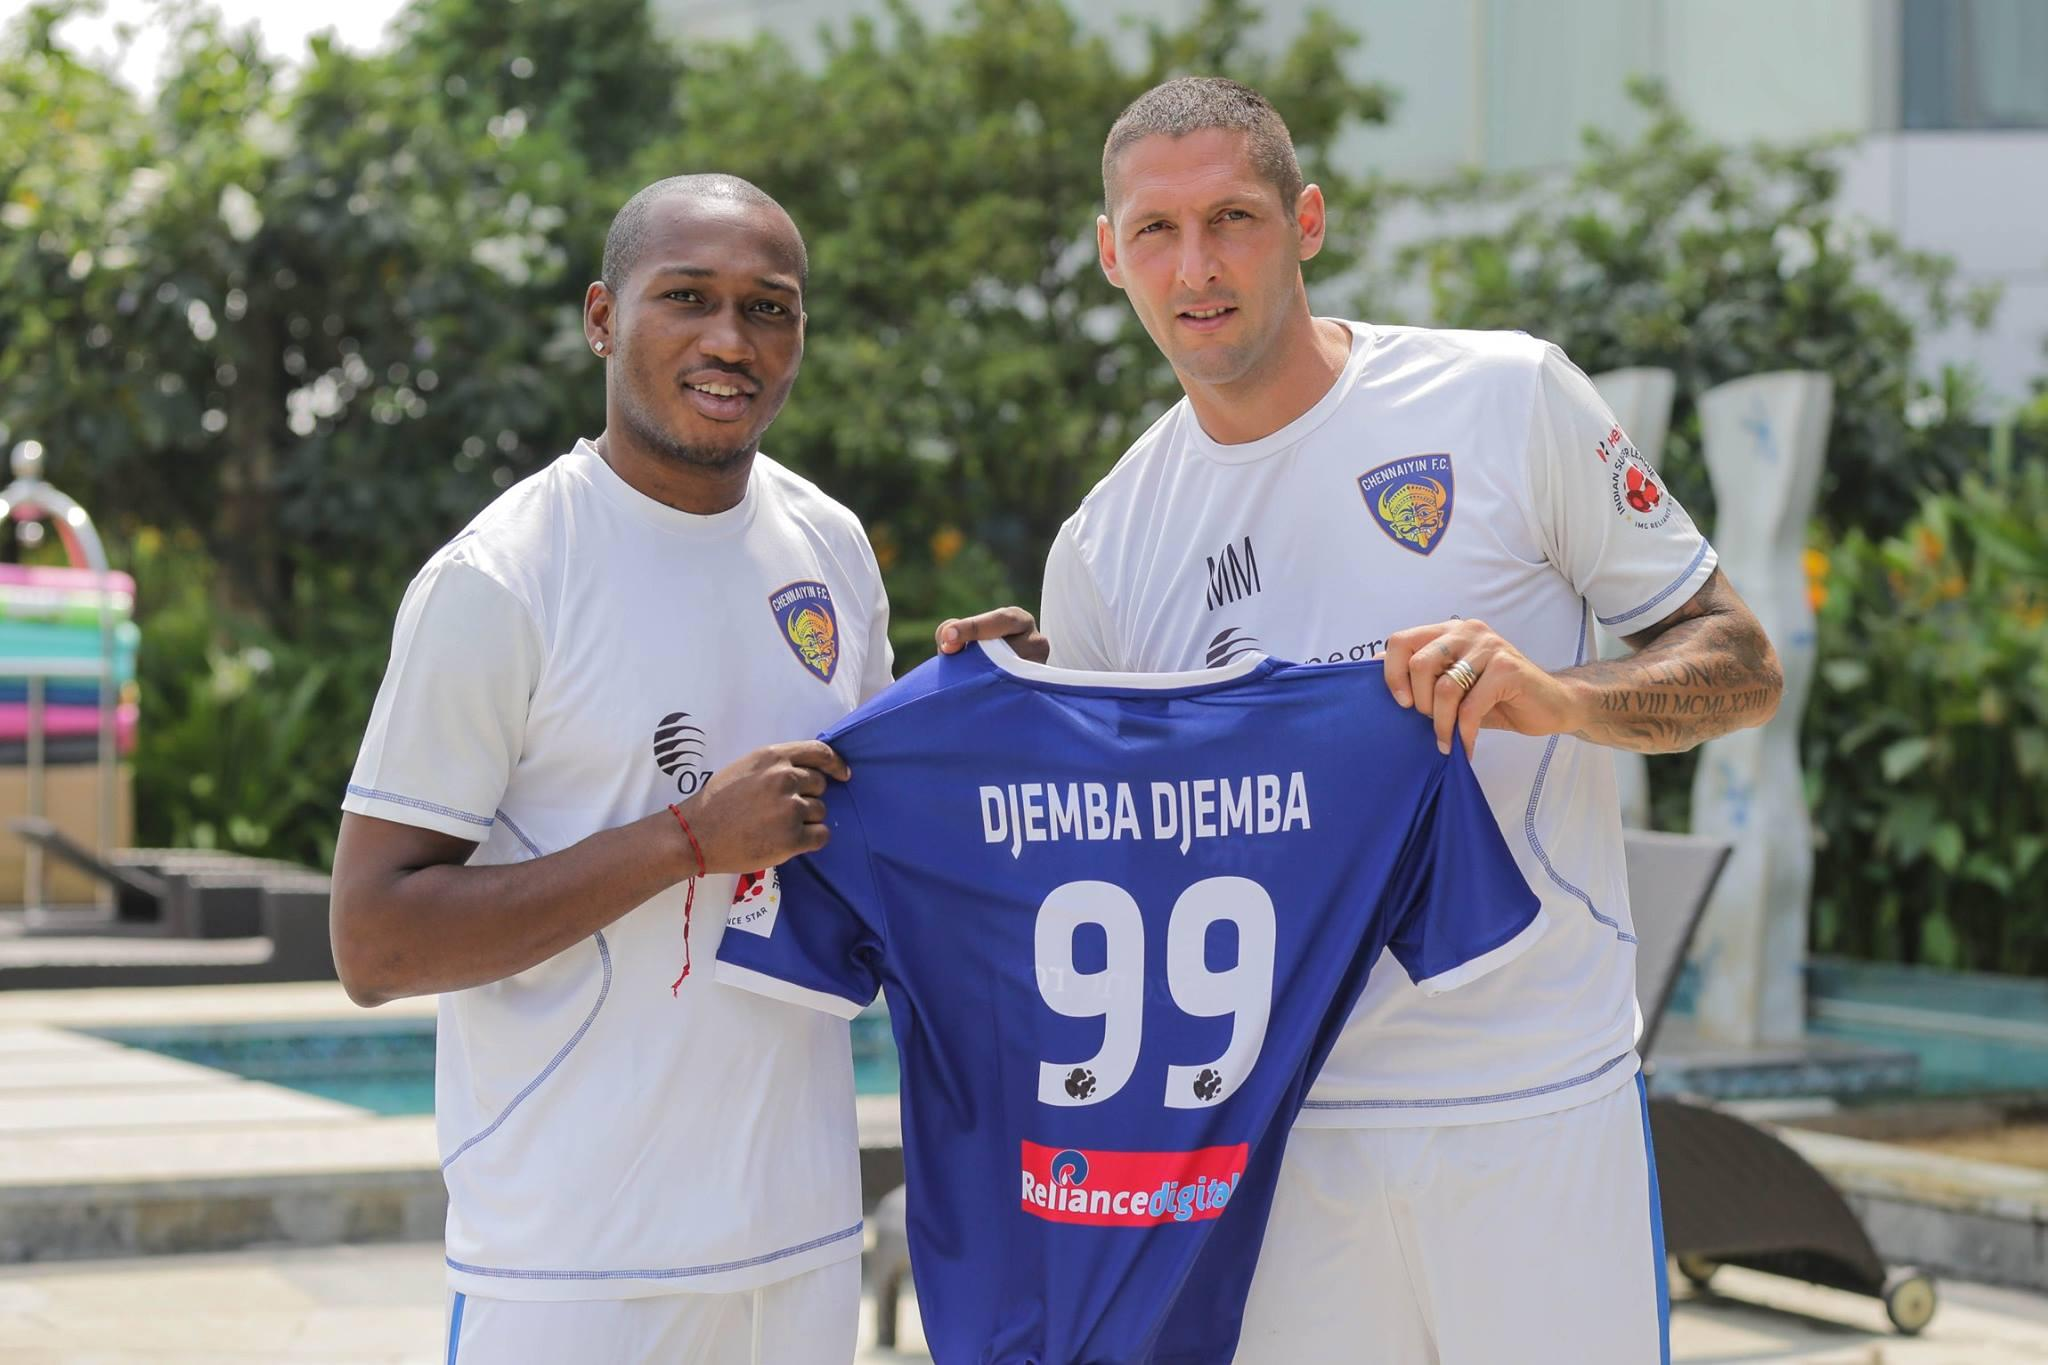 Eric Djemba Djemba stands with Marco Matterazi - with his name correct